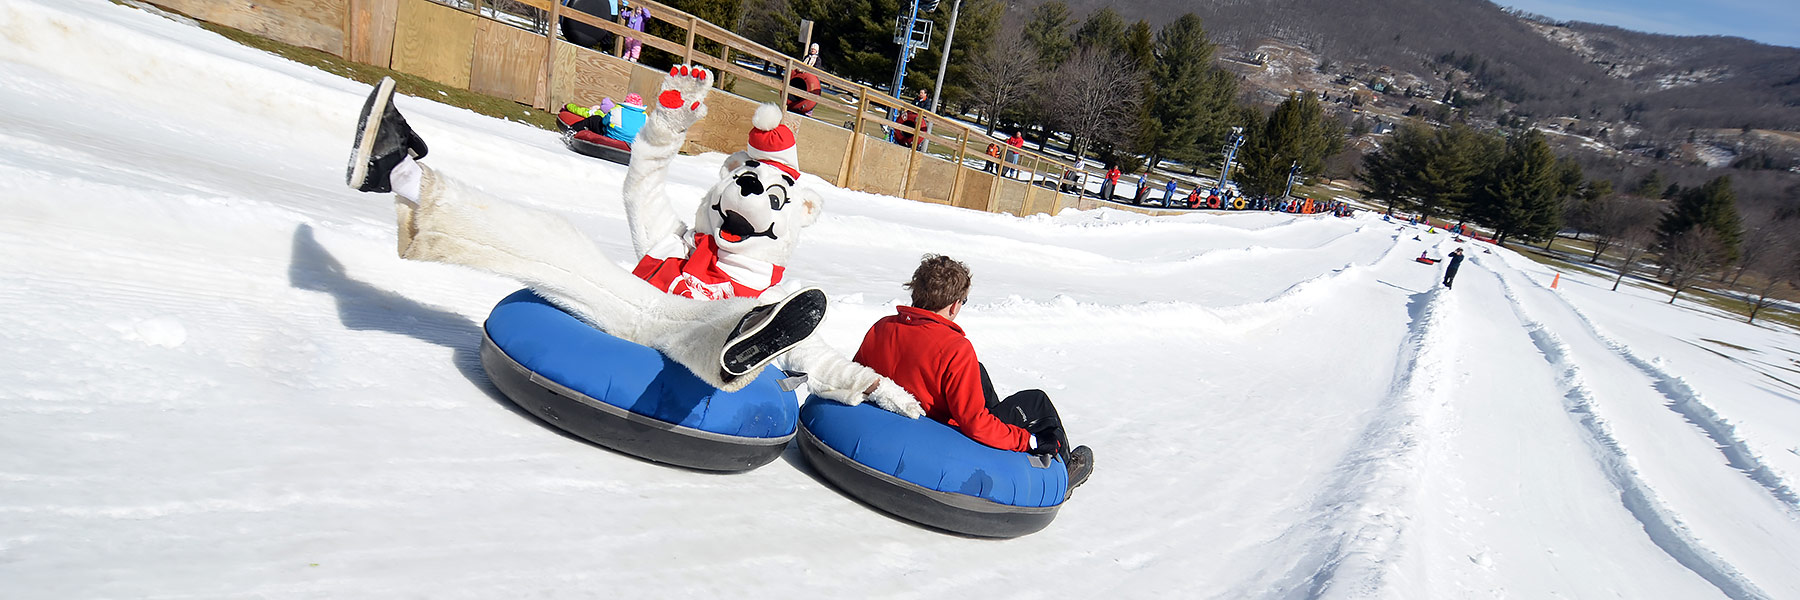 tubing - sugar mountain resort